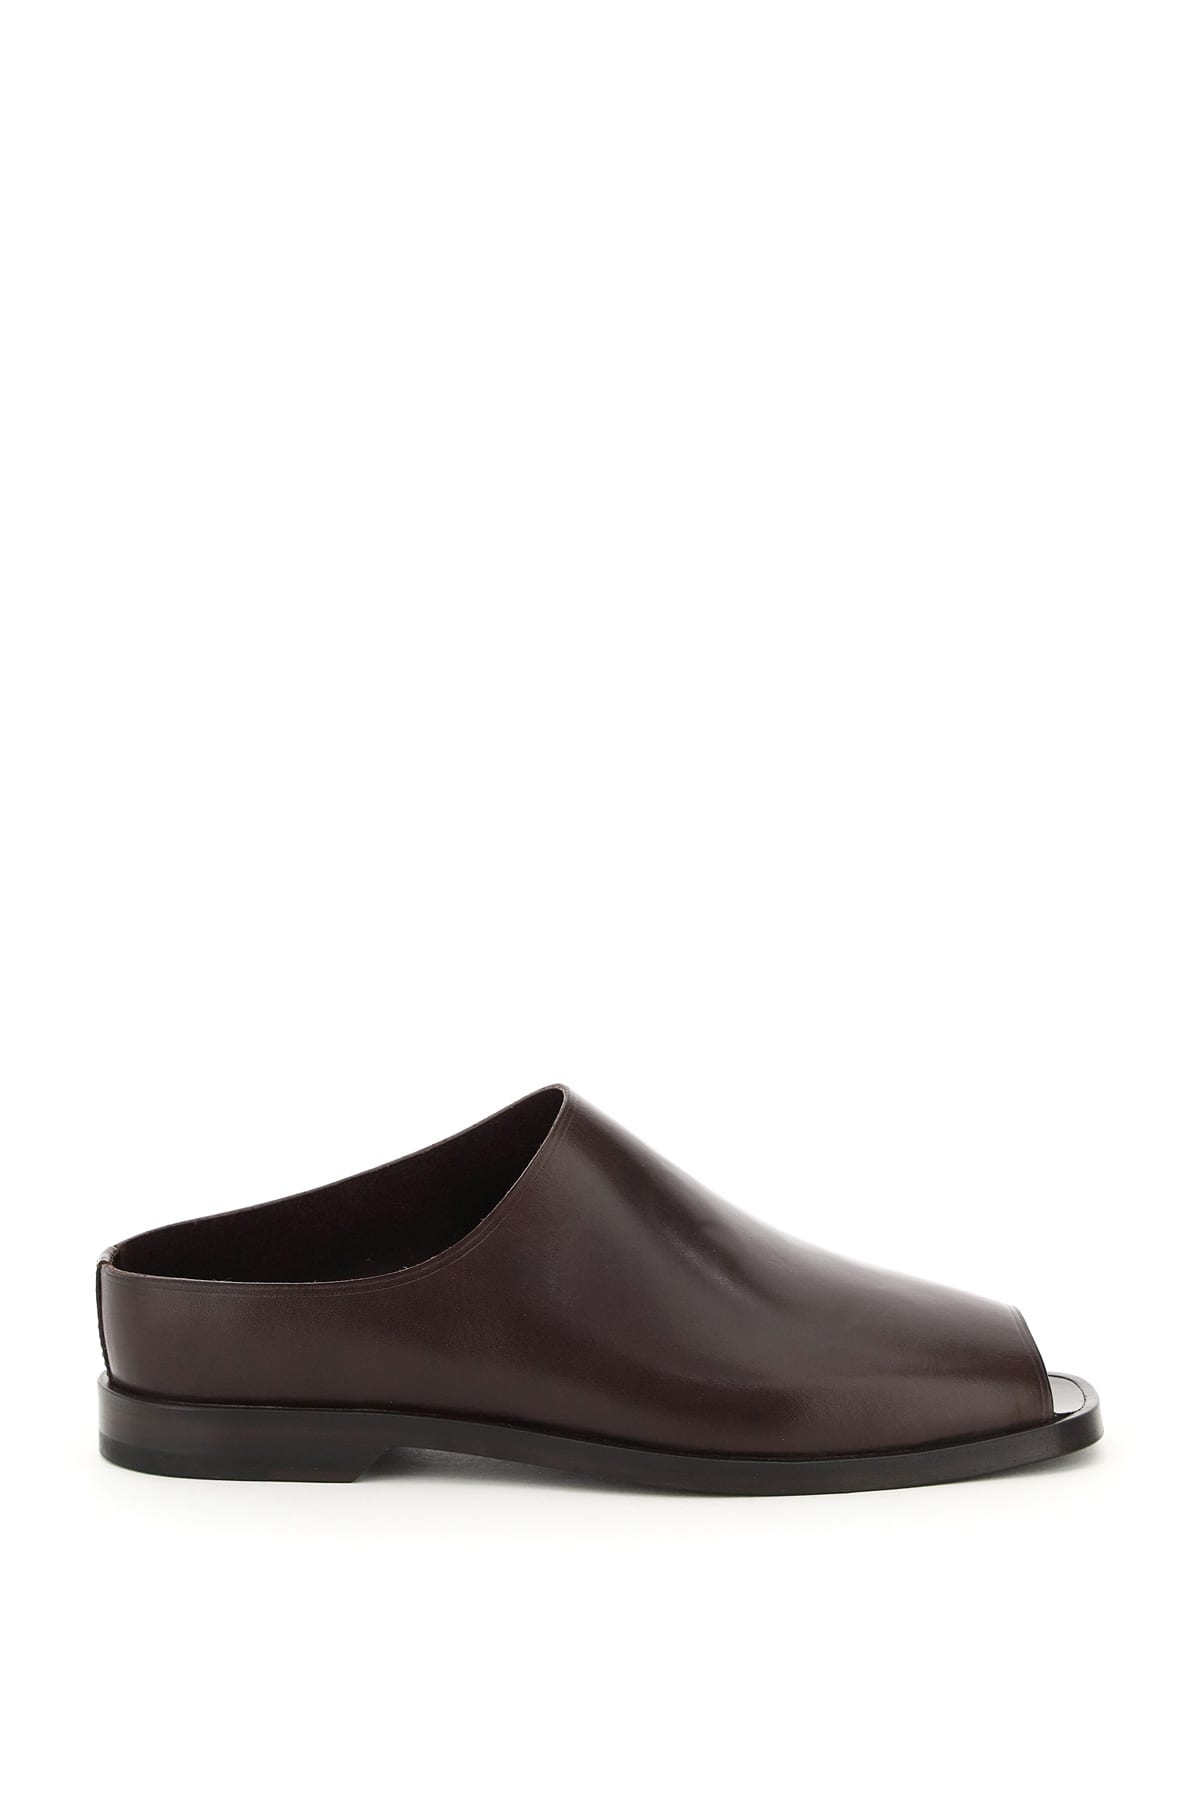 Lemaire LEATHER FLAT MULES